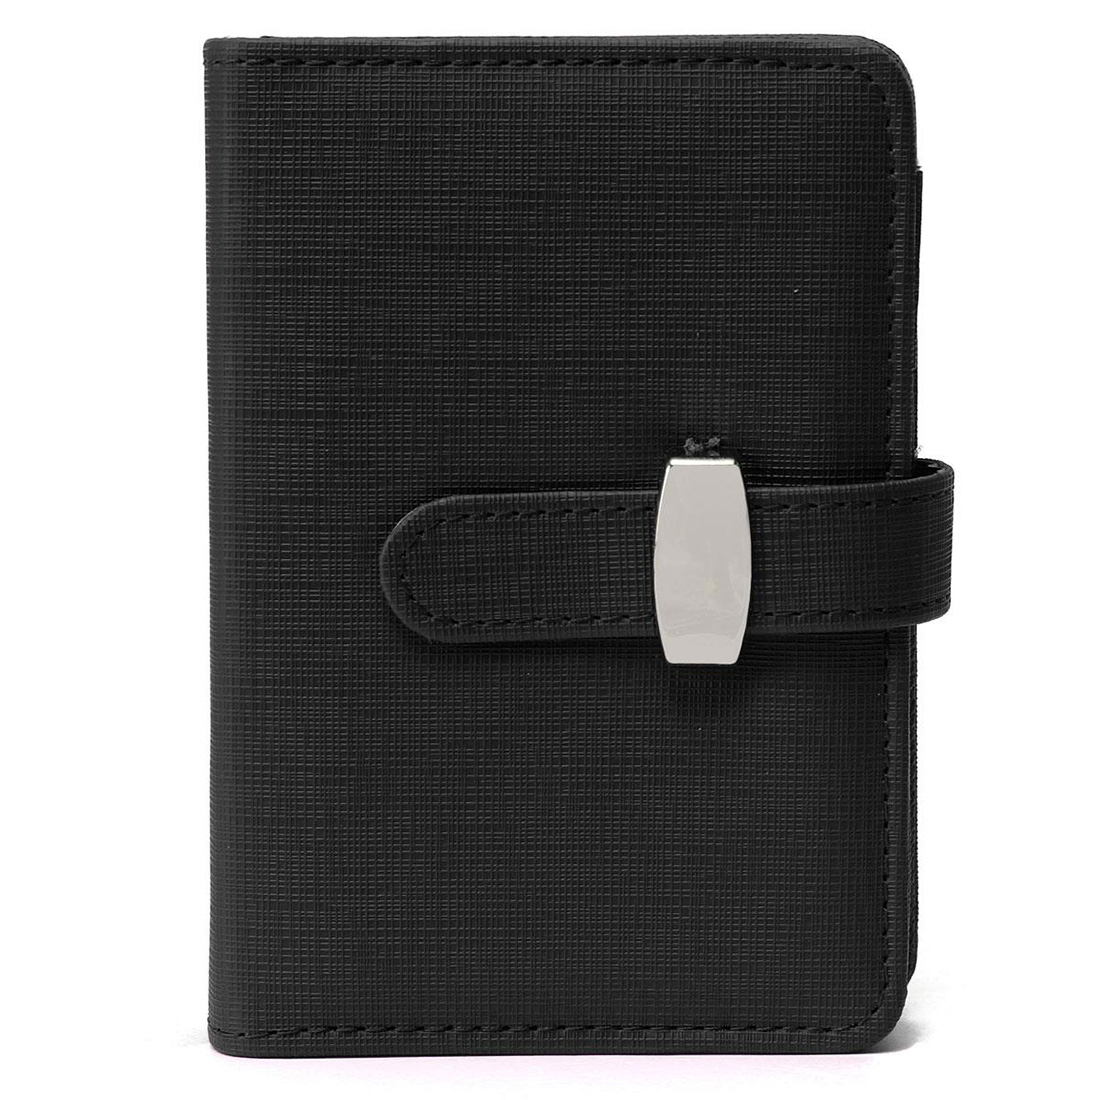 Fashion Modern Business Design A7 Personal Organiser Planner PU Leather Cover Diary Notebook School Office Stationery (Black) modern design a7 personal organiser planner pu leather cover diary notebook school office stationery black